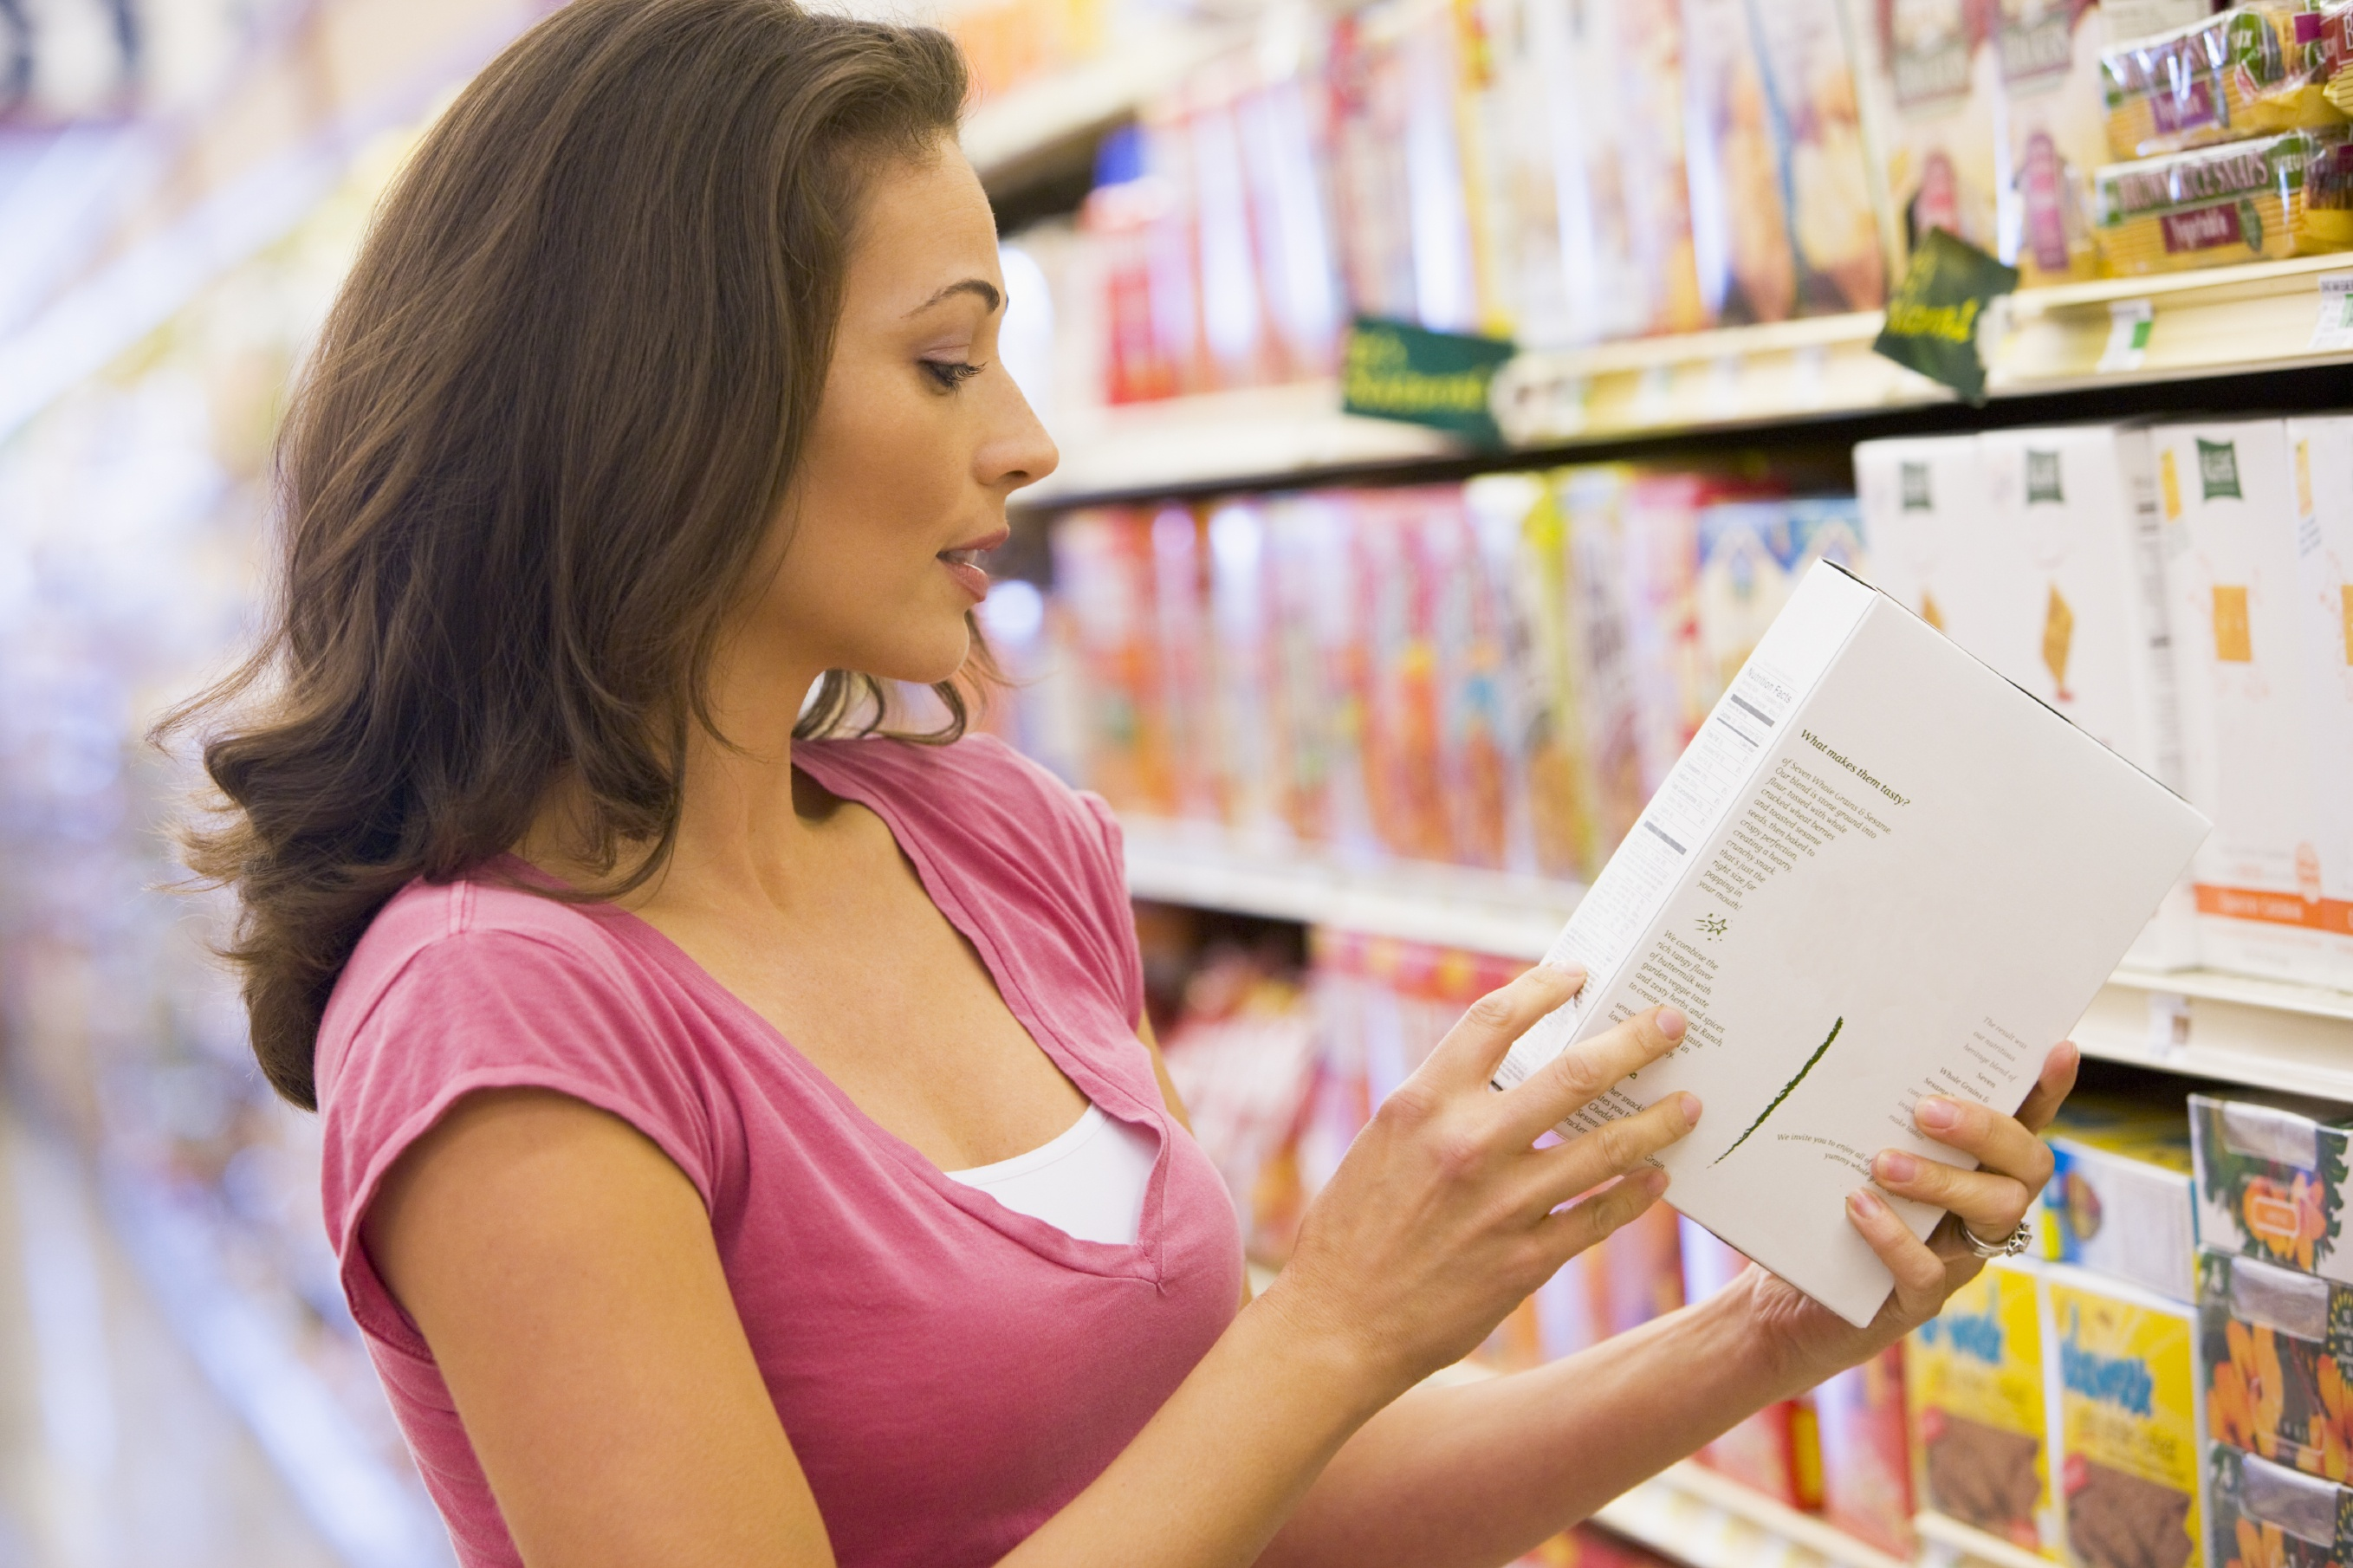 Food Packaging: Finding the Balance Between Function, Trend and Food Safety